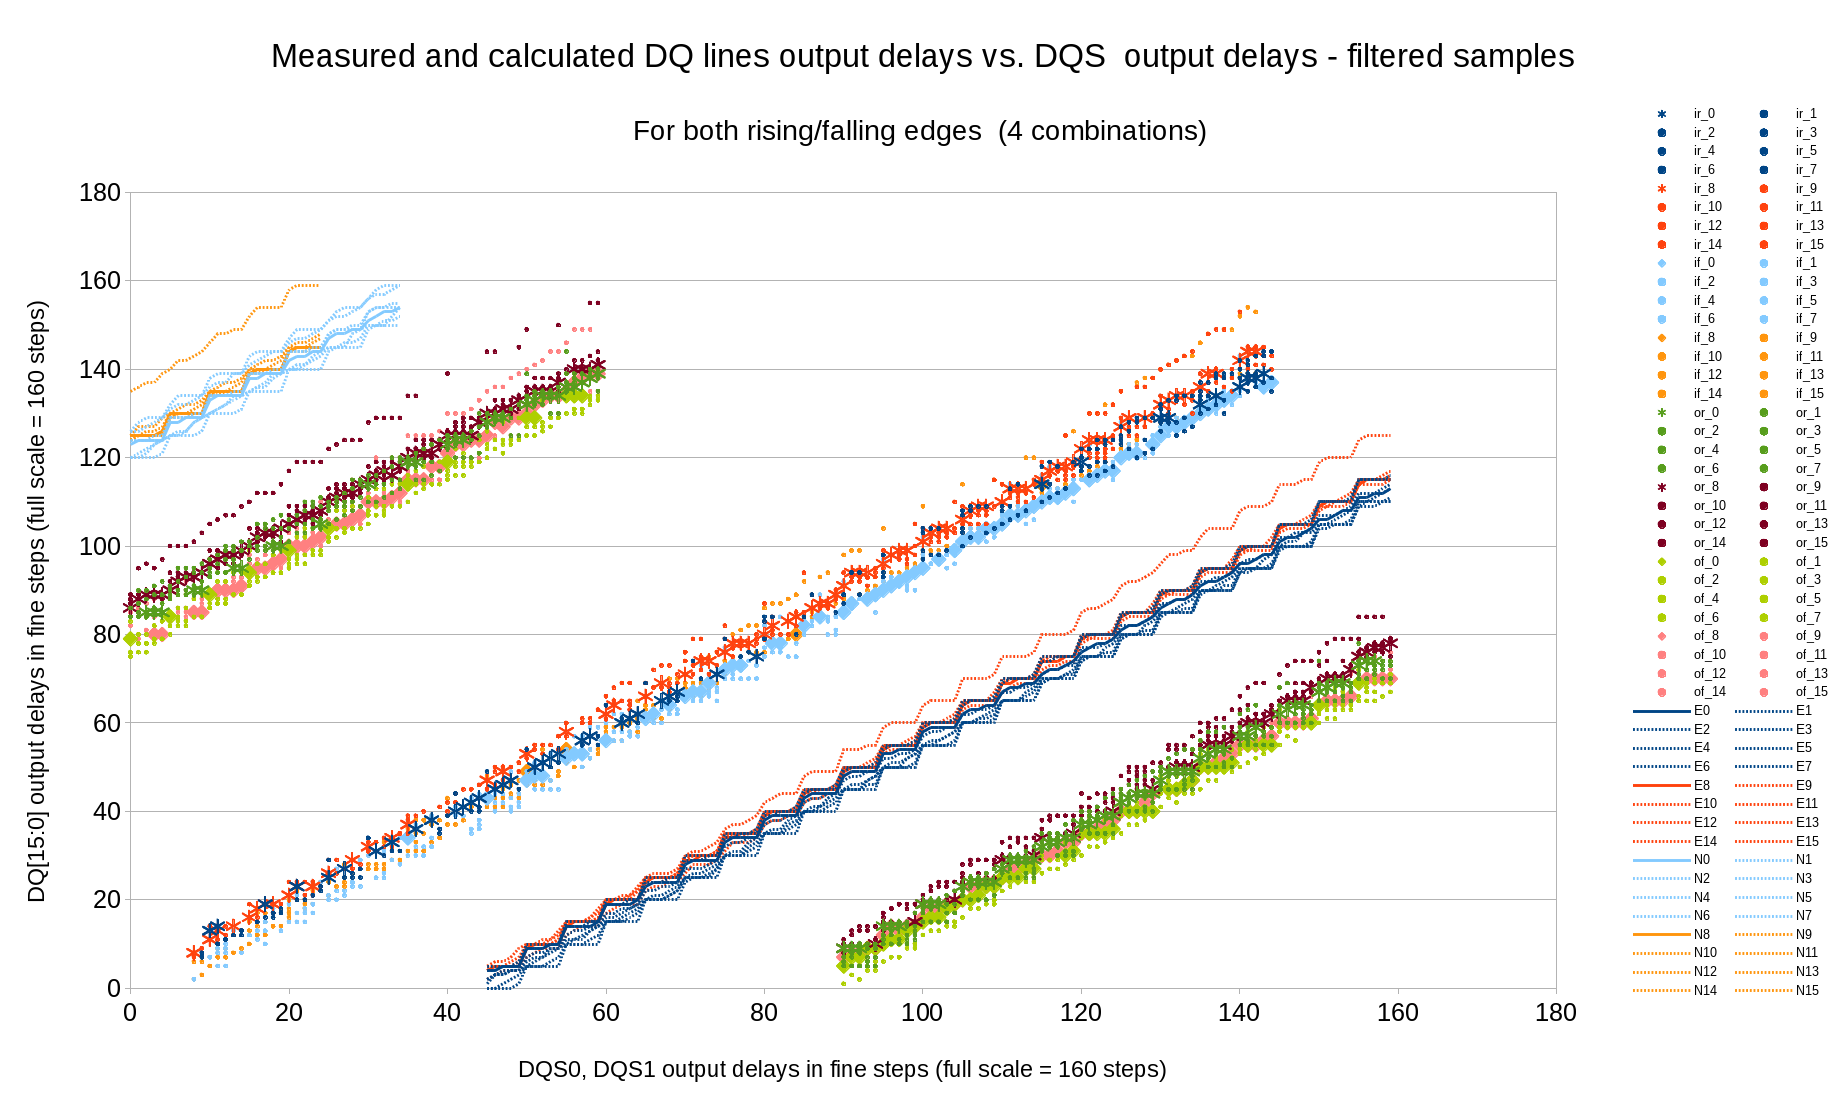 Fig.8 Measured (marginal) and calculated (optimal) DQ input delays vs. DQS output delays